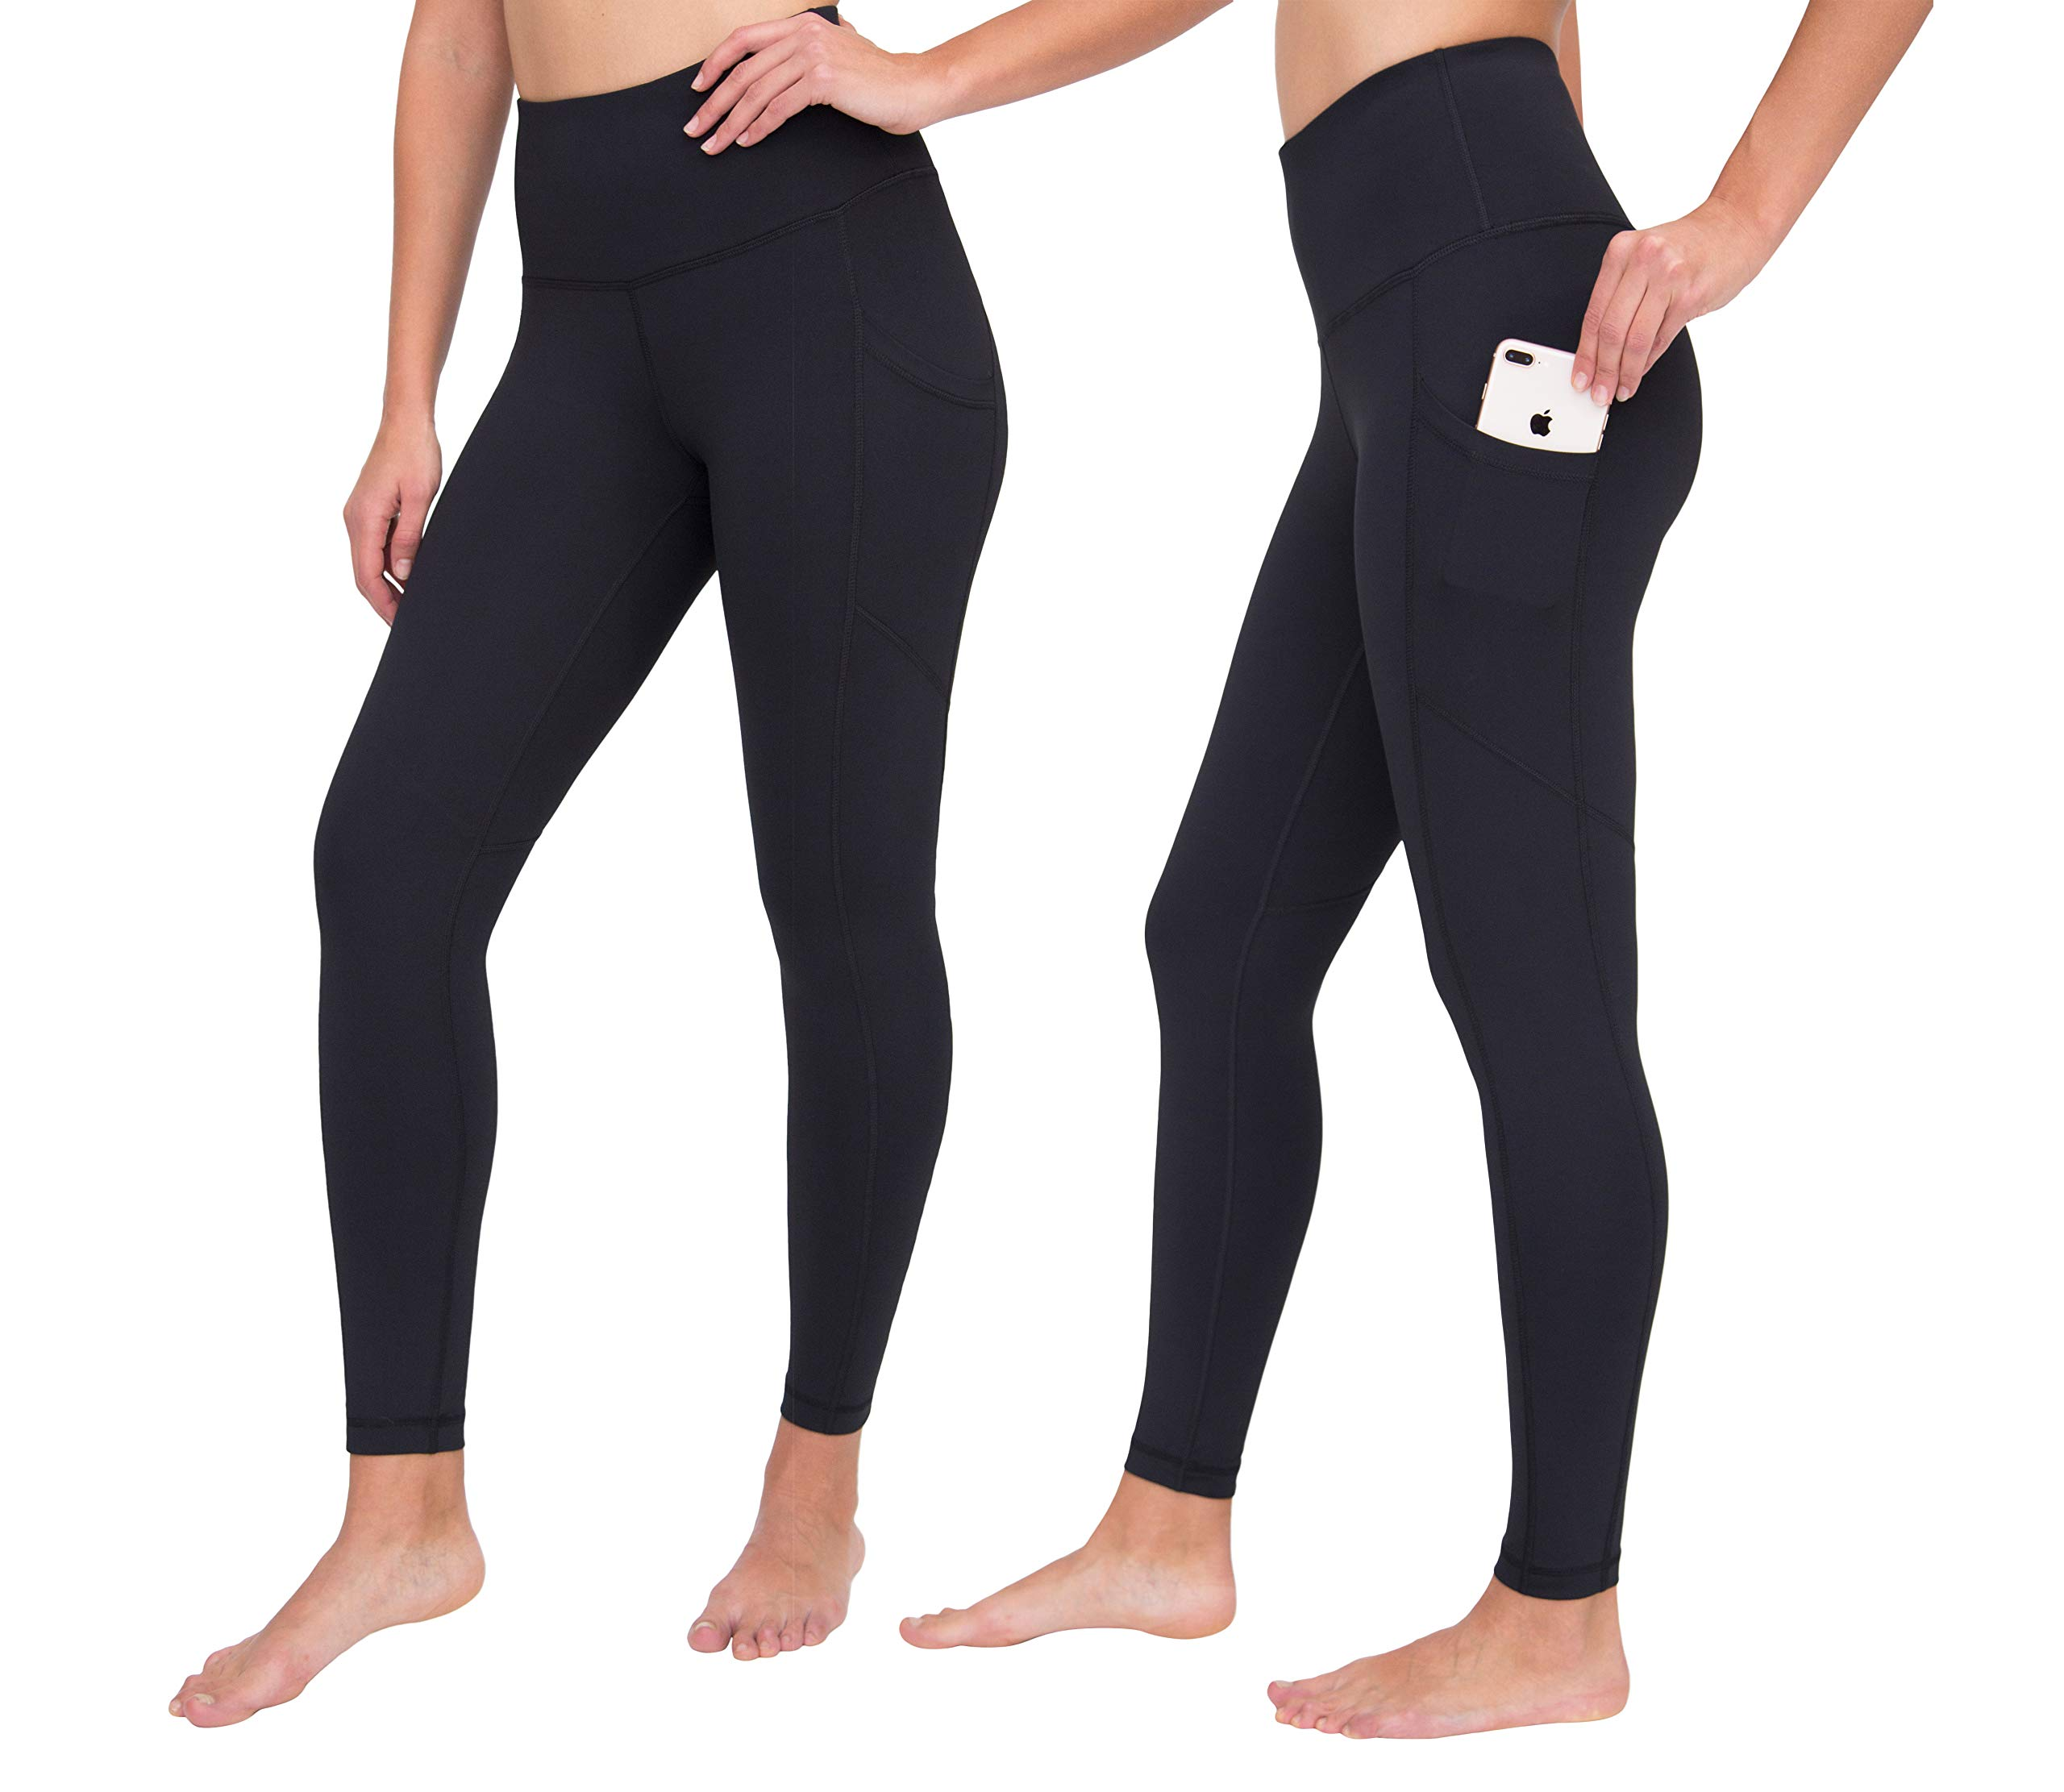 90 Degree By Reflex High Waist Interlink Yoga Pants - Black Ankle Length 2 Pack - XS